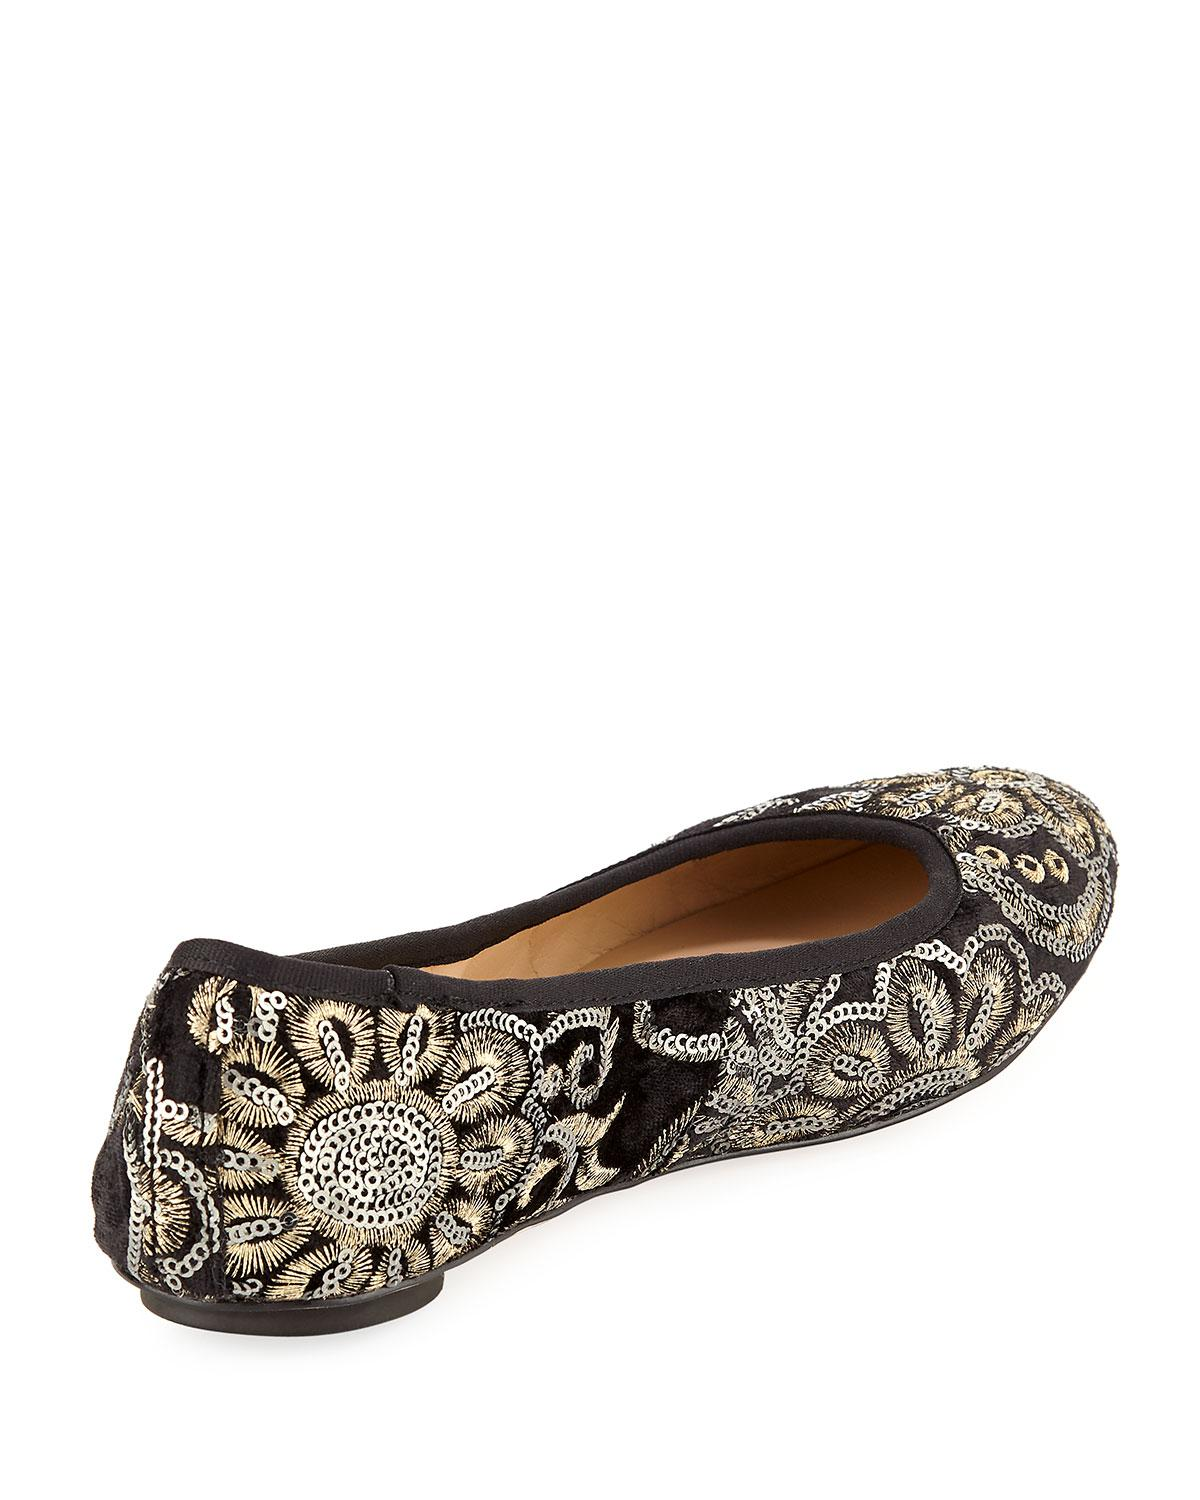 b095d91fa357 Lyst - Karl Lagerfeld Leroux Sequined Ballerina Flat in Black